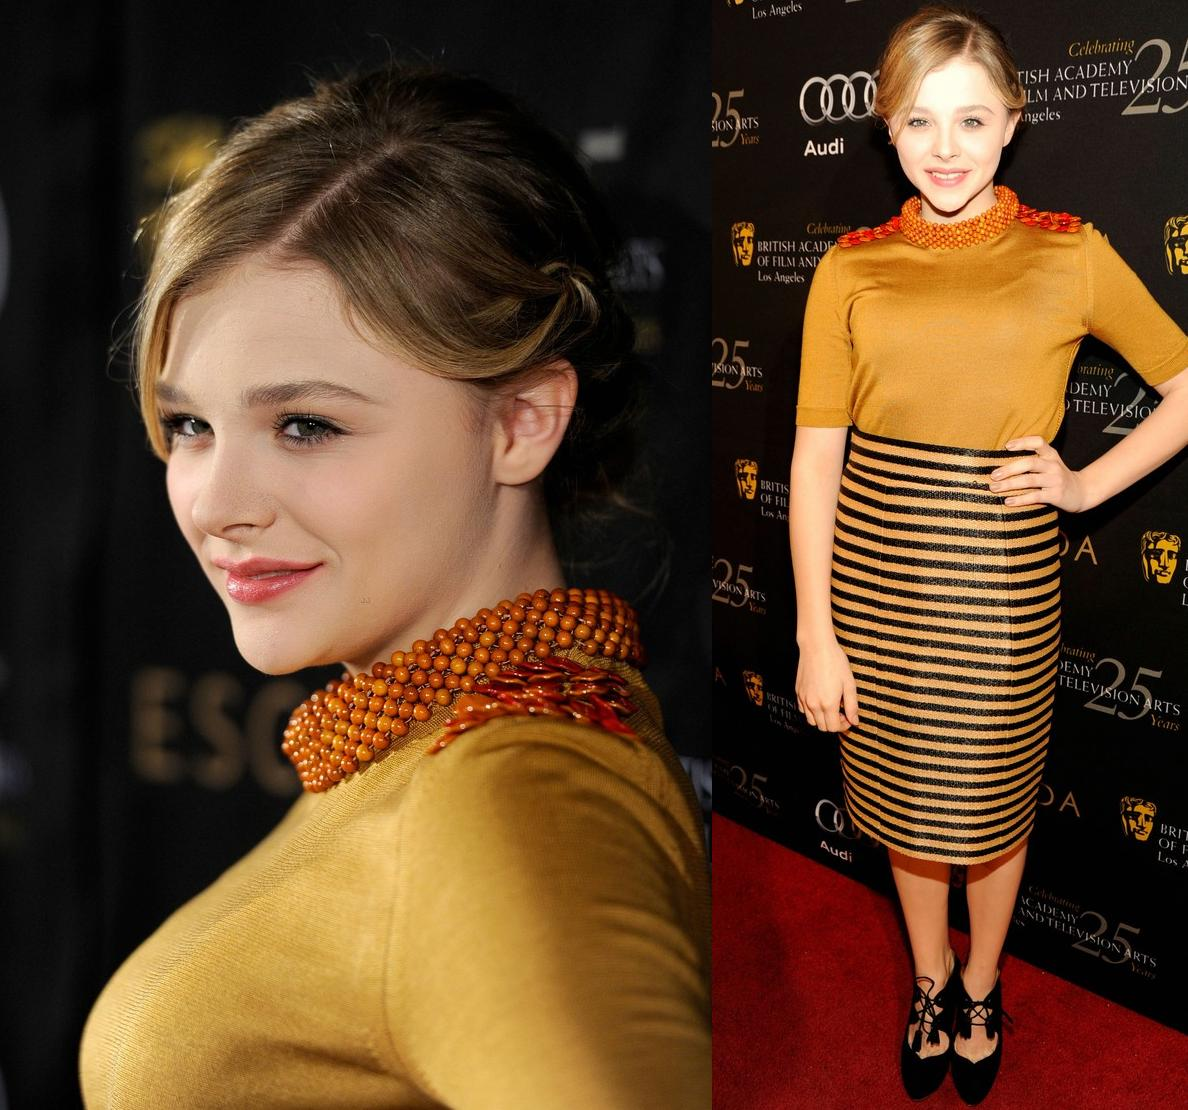 http://3.bp.blogspot.com/-OLdshz97ojY/TxPctWJwYGI/AAAAAAAAEPo/Gr_UehWswuY/s1600/Chloe+Moretz+In+Burberry+-+BAFTA+Awards+Season+Tea+Party.jpg